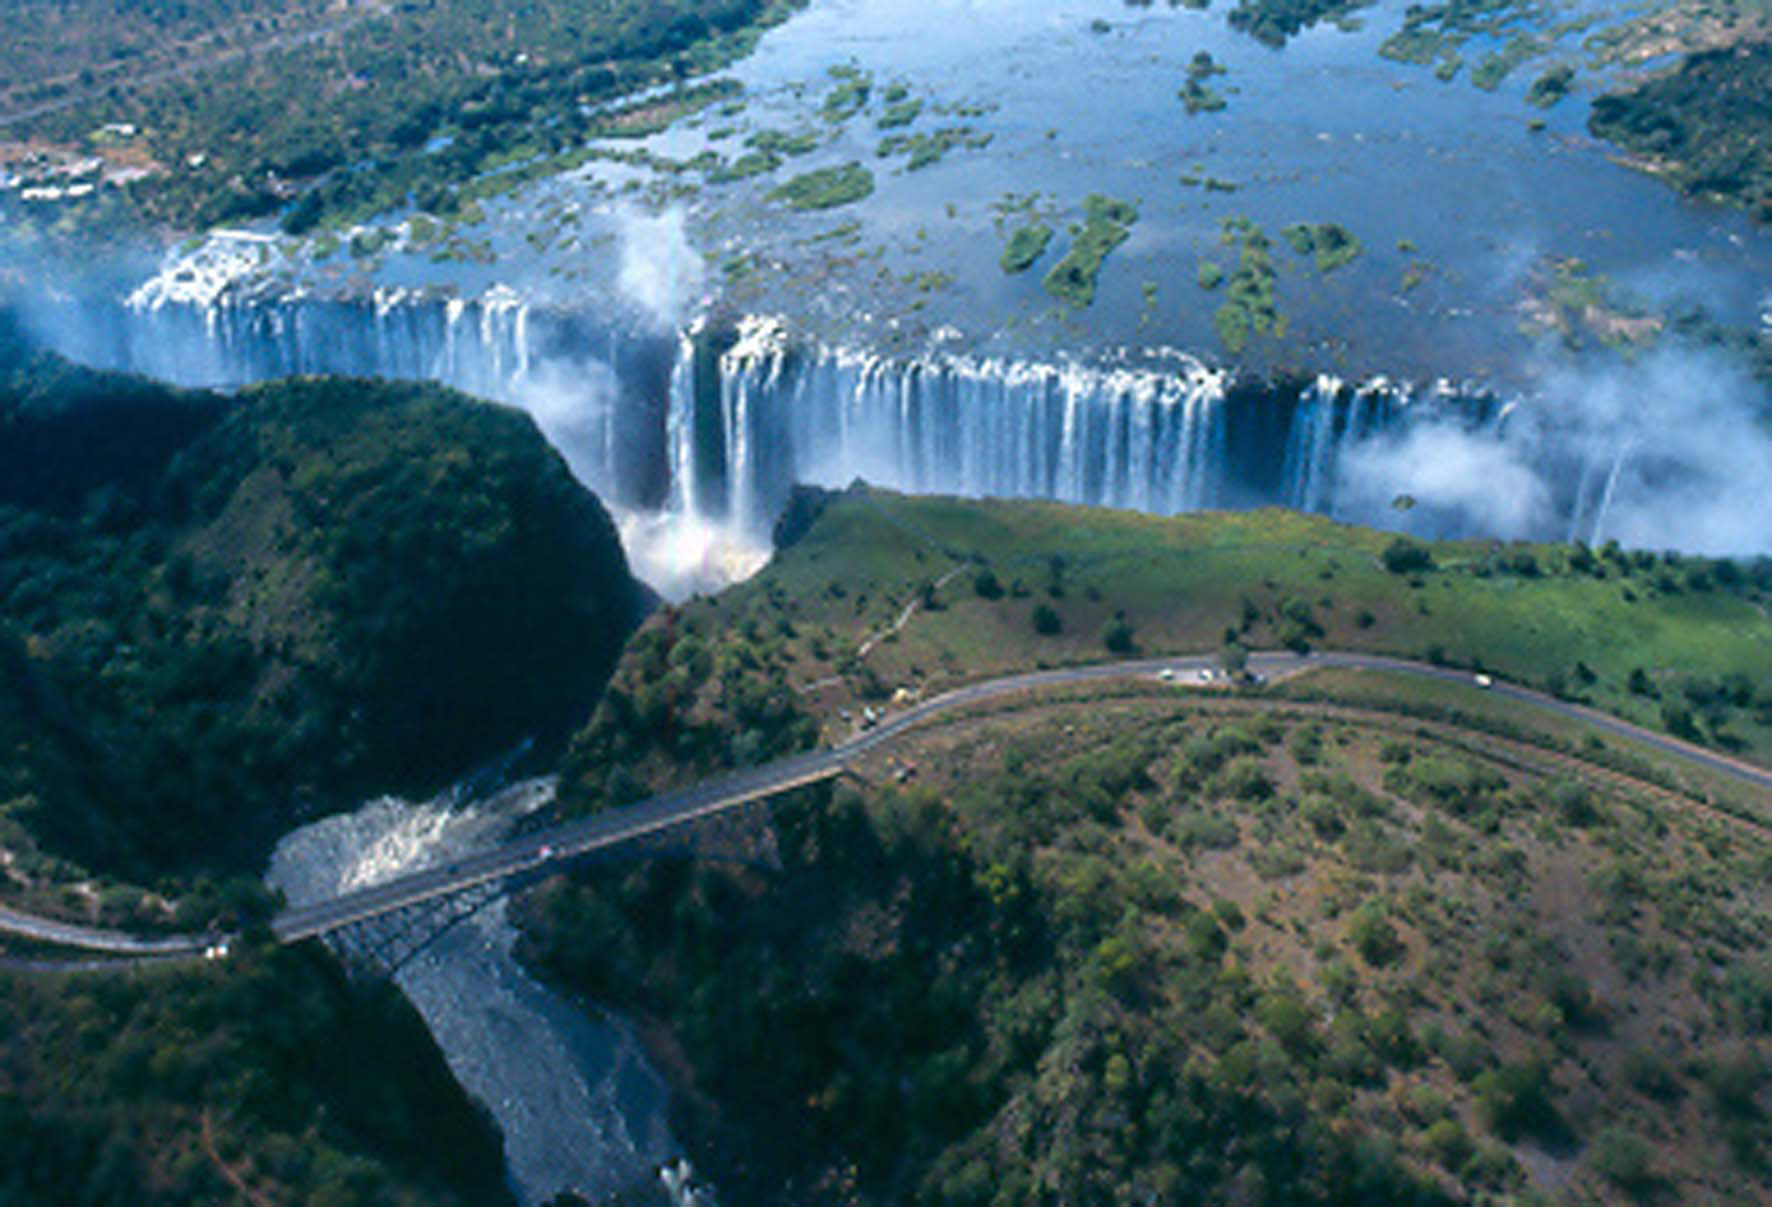 Iguazu Falls Hd Wallpaper Victoria Falls World S Largest Waterfall Gets Ready